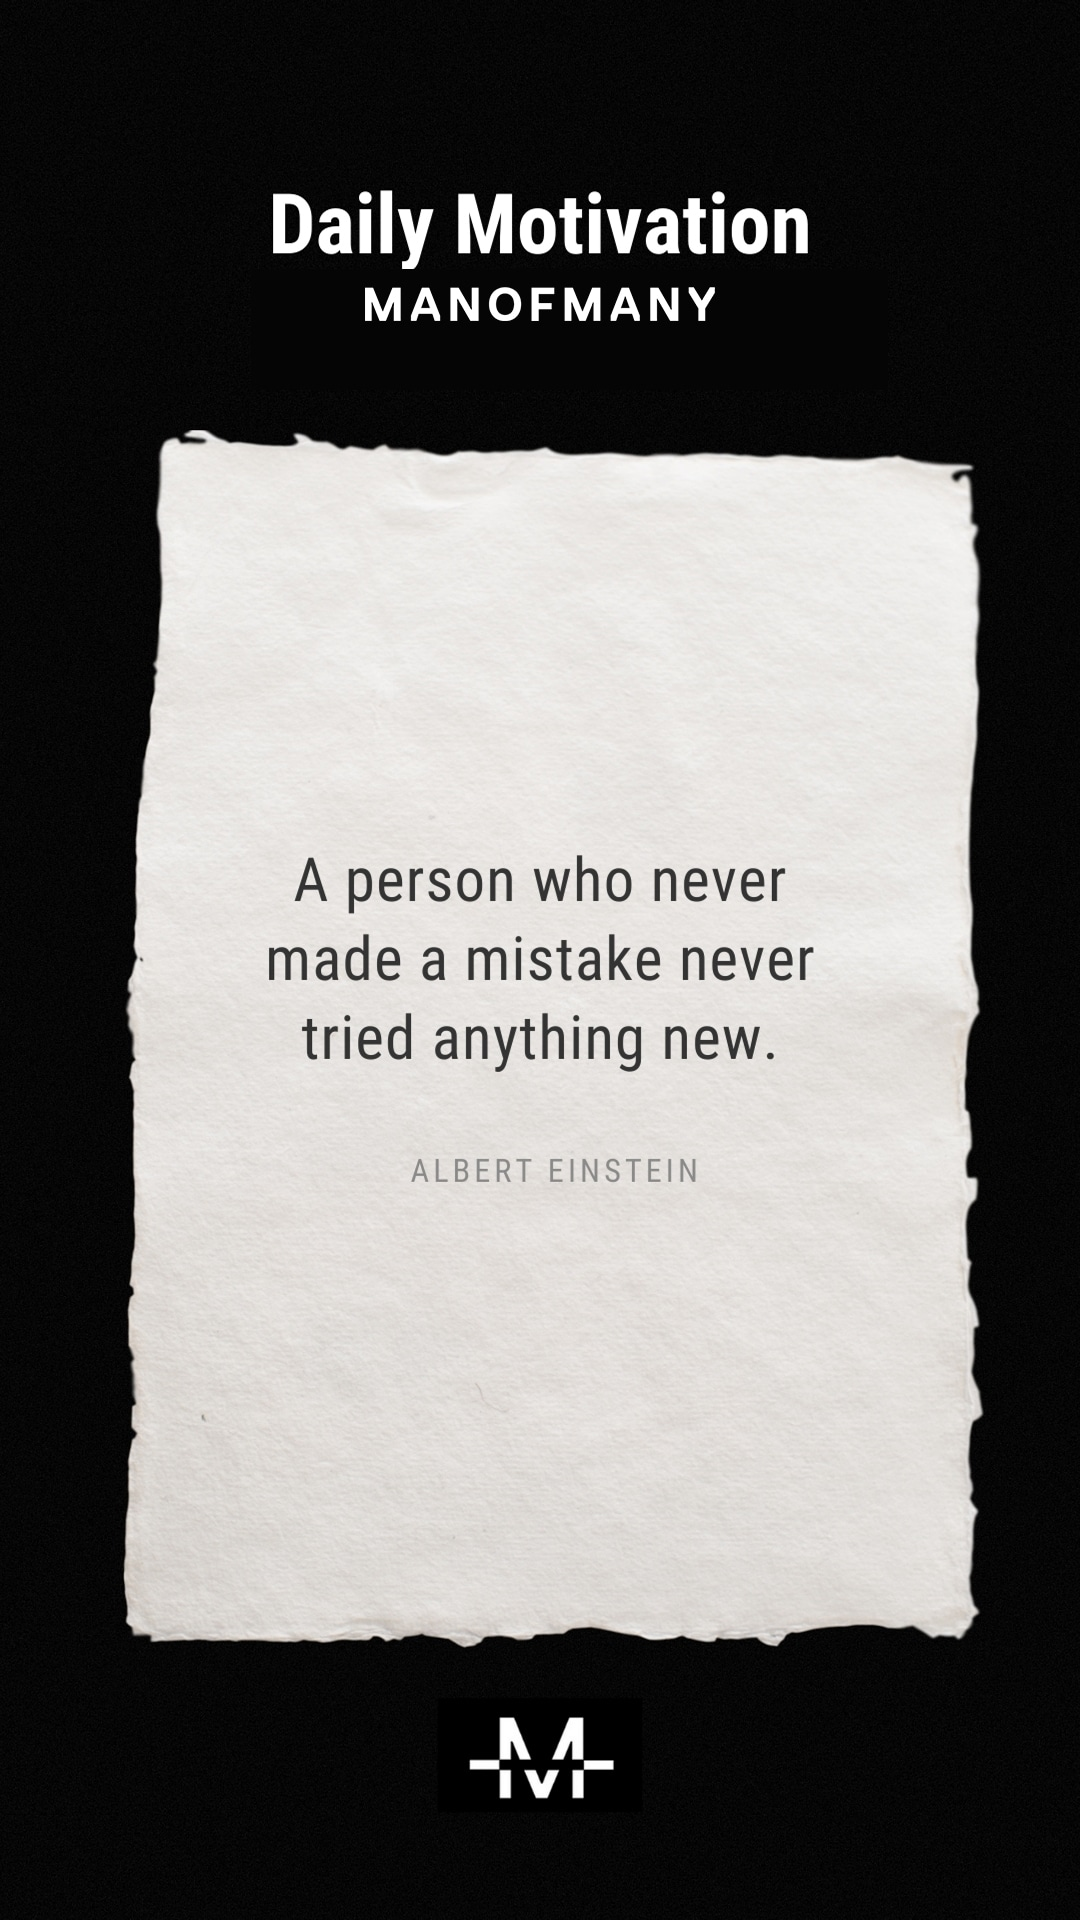 A person who never made a mistake never tried anything new. – Albert Einstein quote